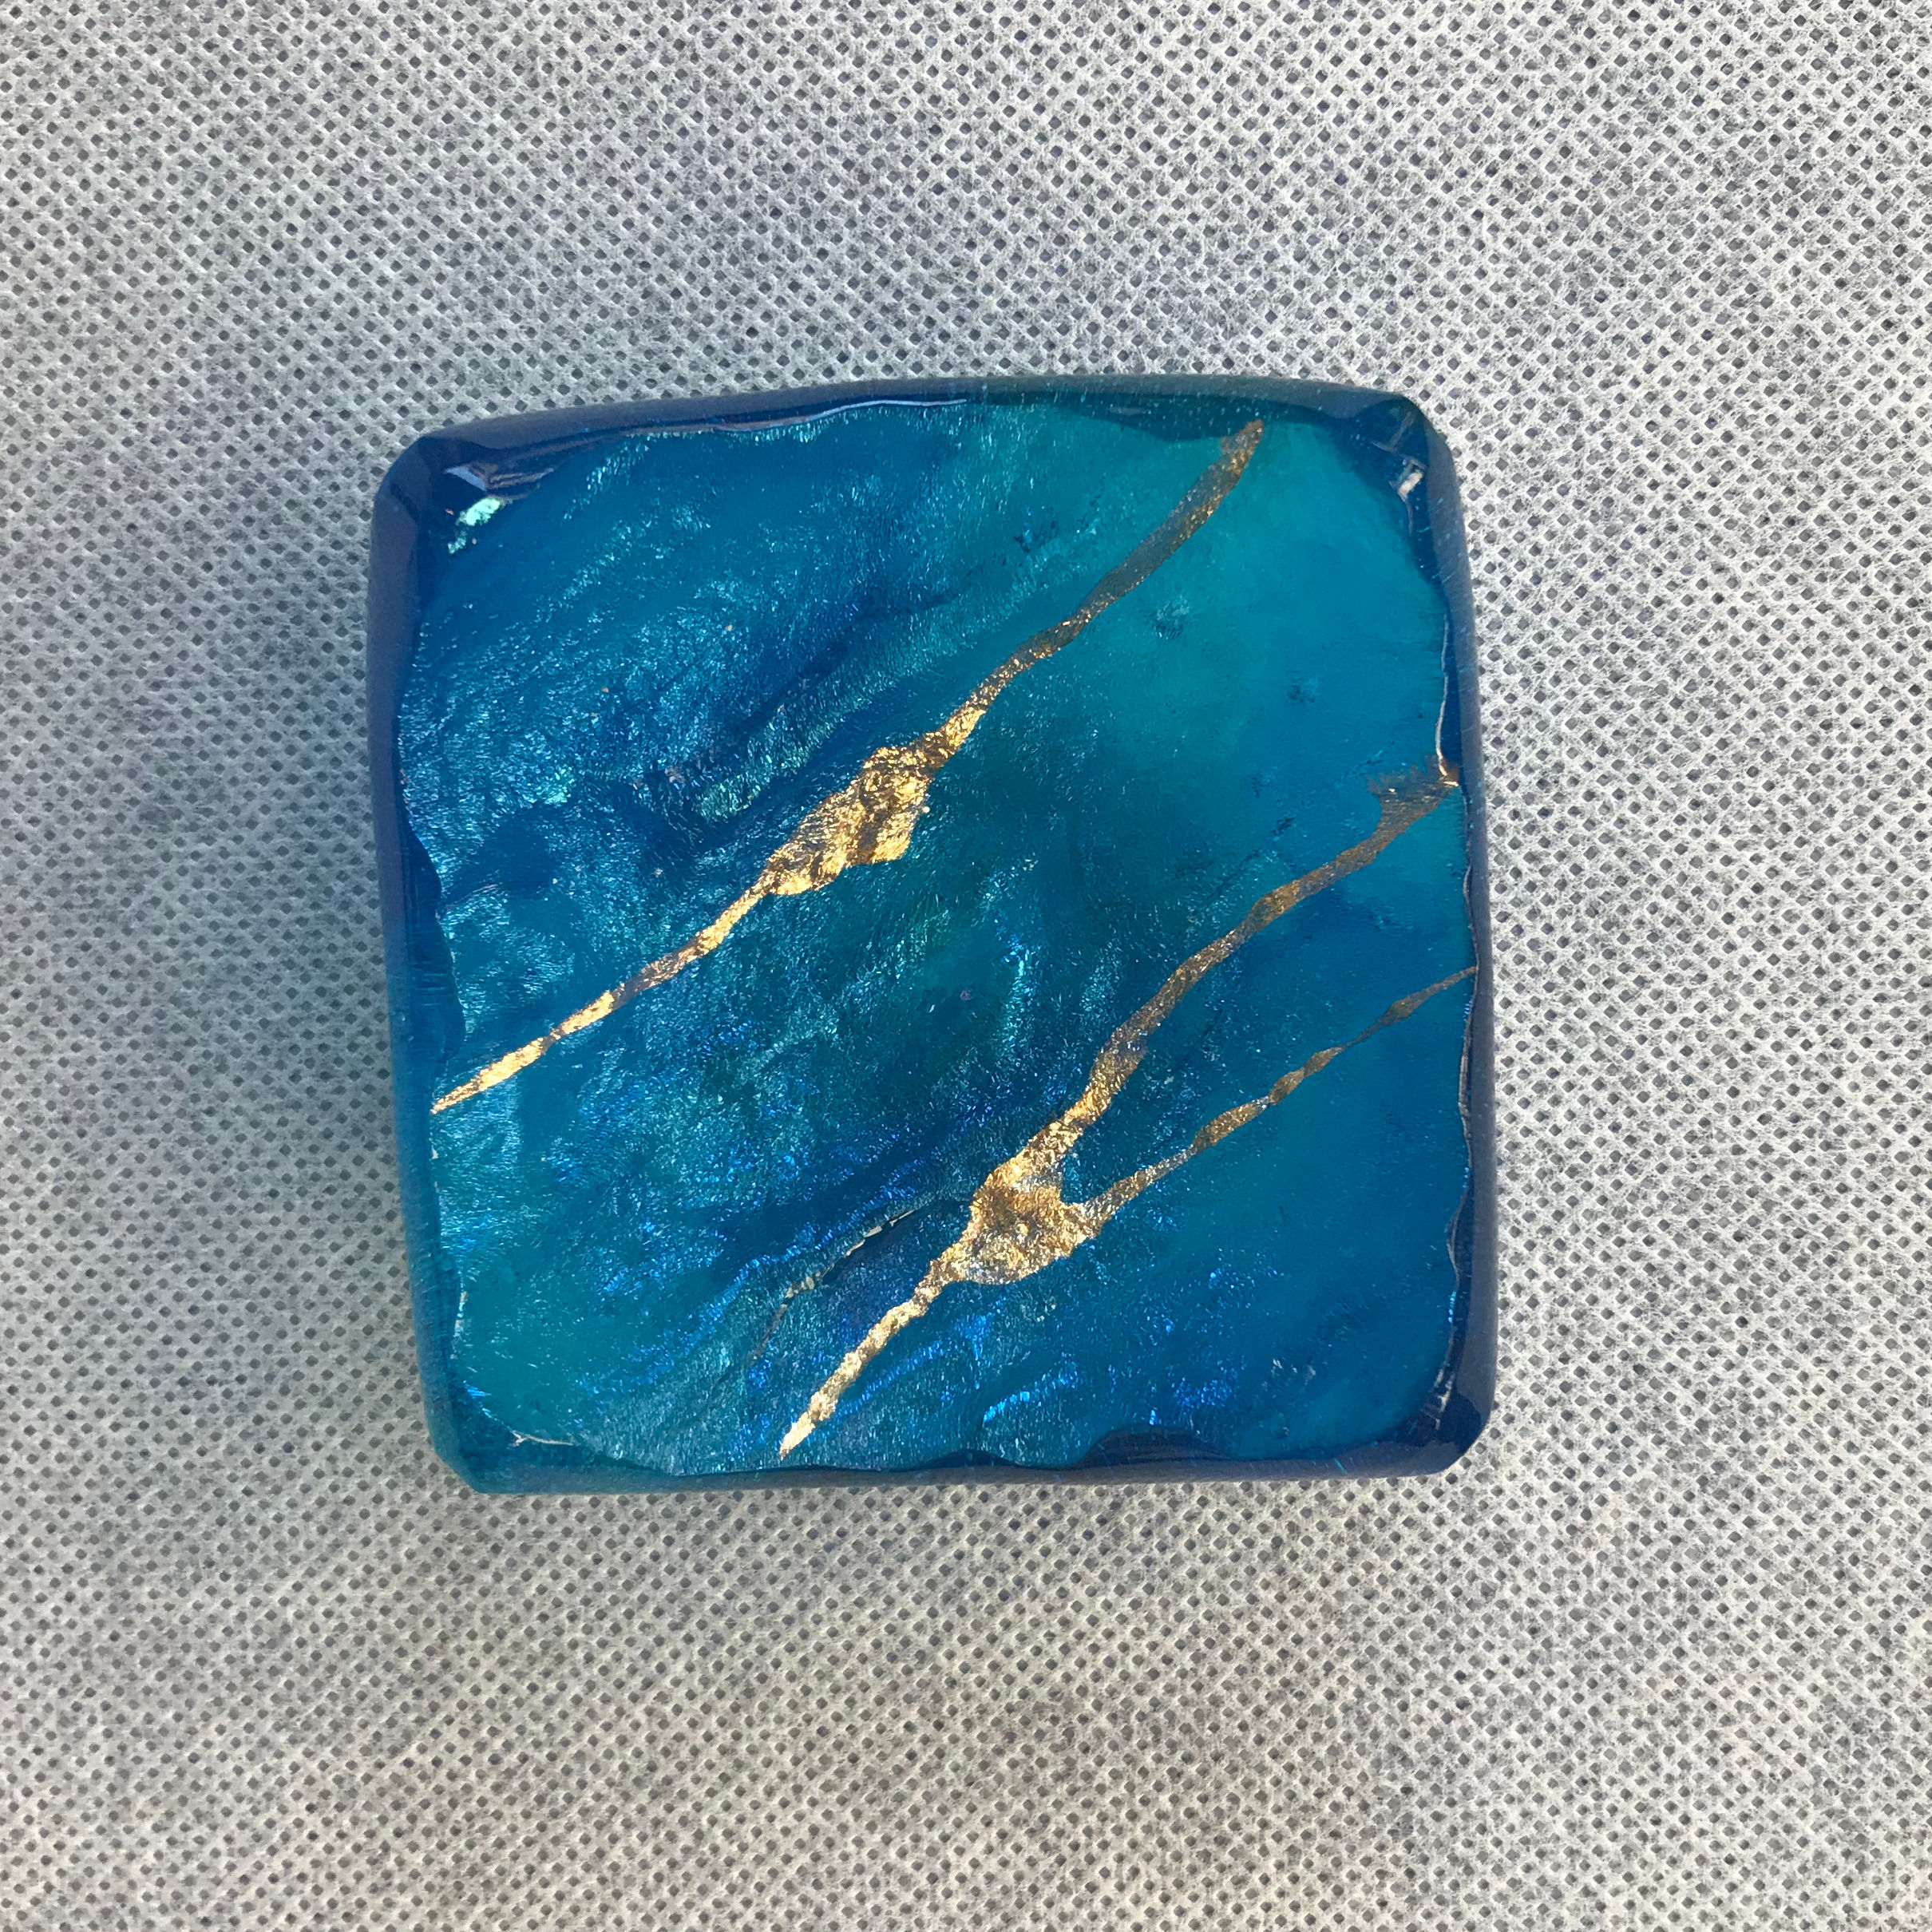 Glass Square Tray by Marian Fieldson blue